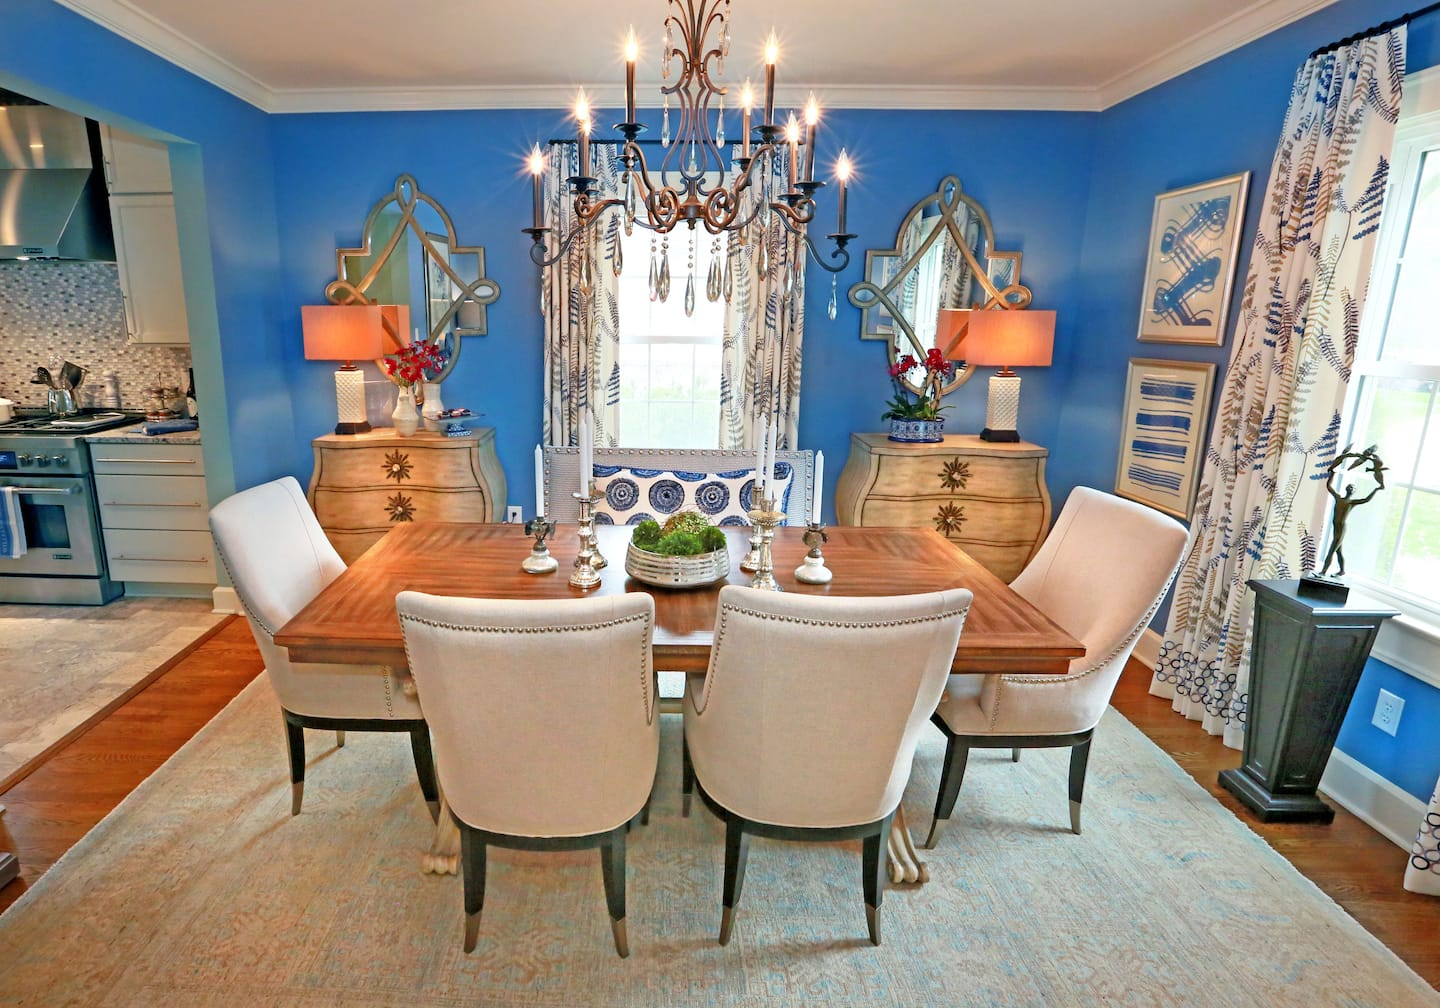 Eclectic Formal Dining Room With Patterned Drapes, Decorative Mirrors,  Artwork And Traditional Chandelier